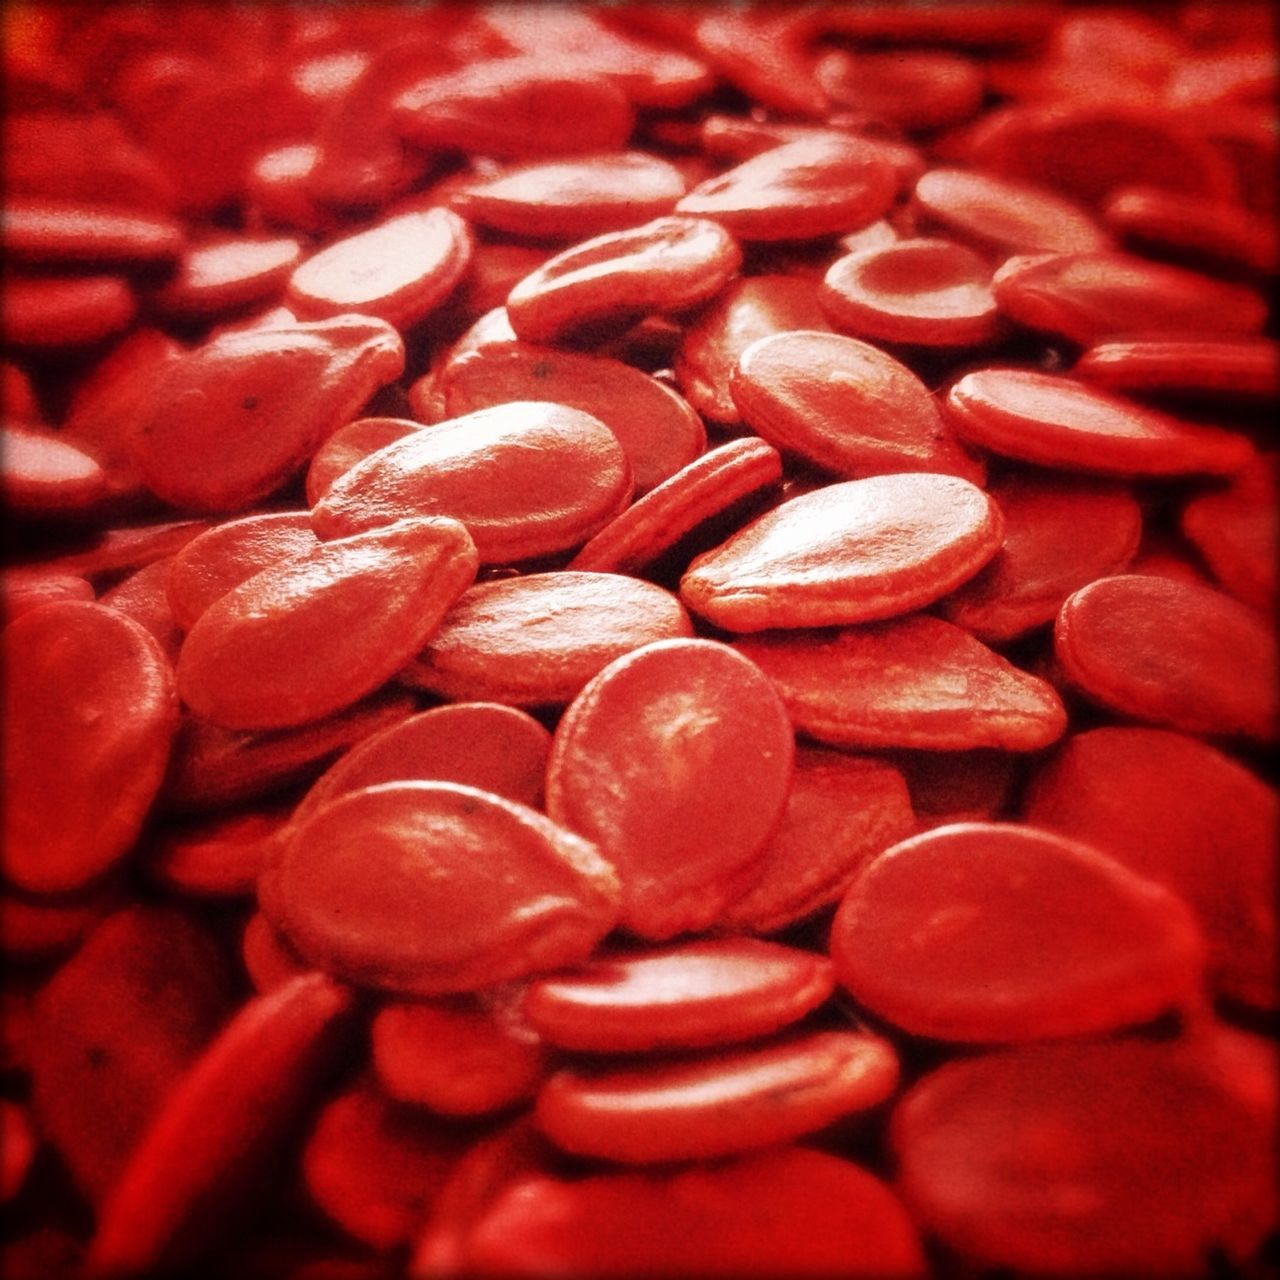 Chinese New Year Red Melon Seeds